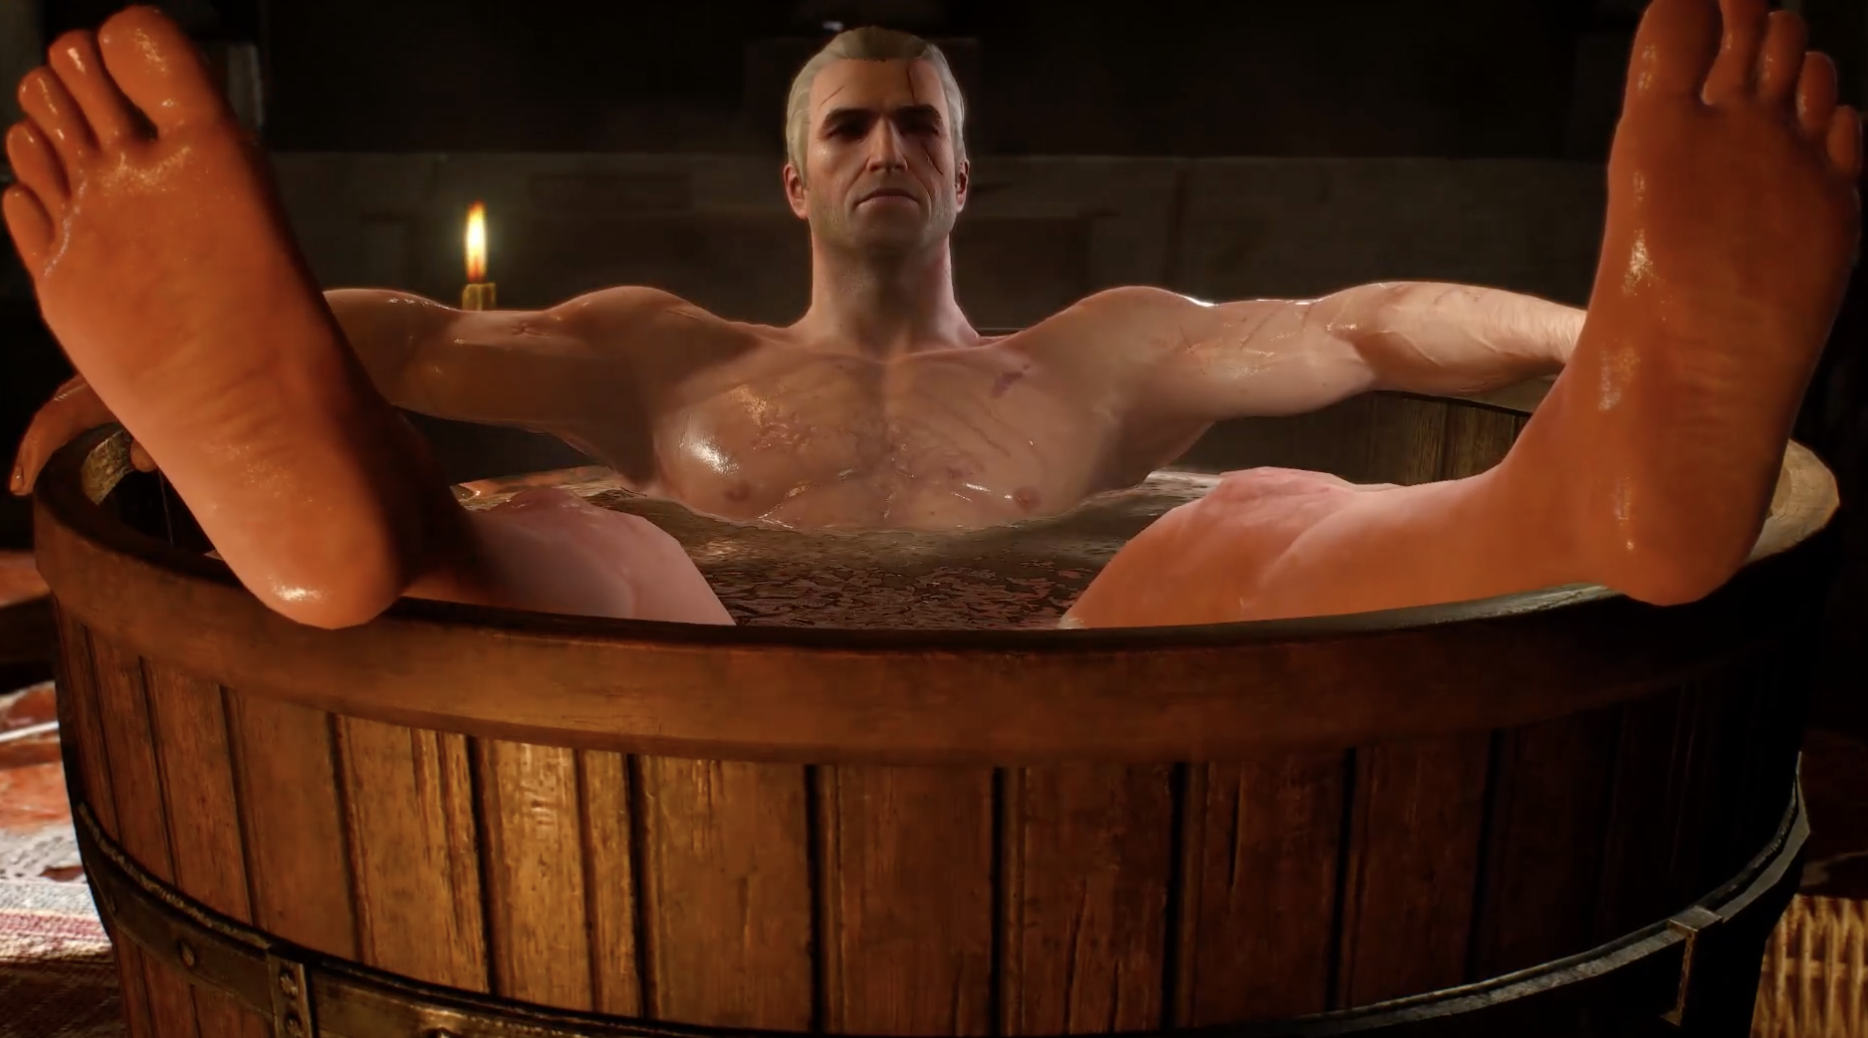 One of the most popular streams when the new category went live was of Geralt of The Witcher series taking a bath.